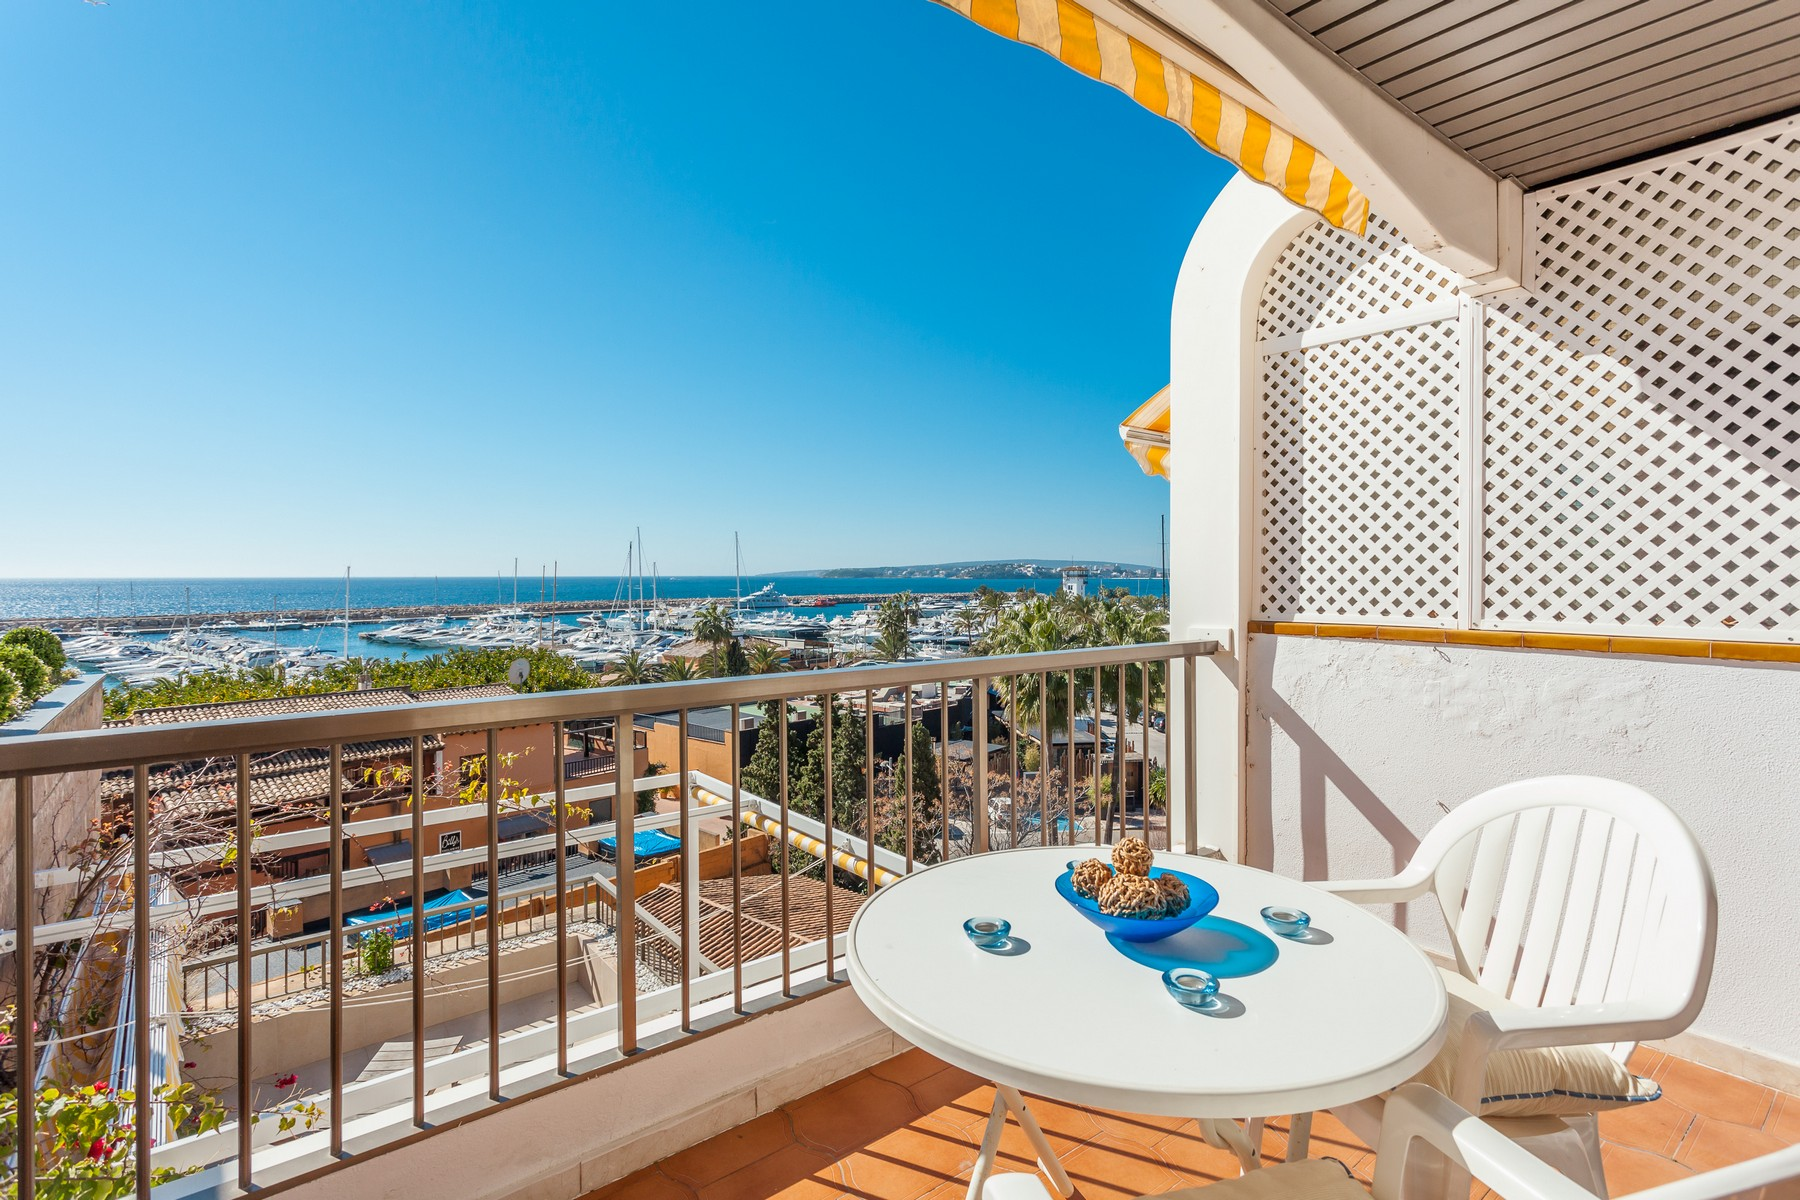 Apartment for Sale at Apartment overlooking Puerto Portals and the sea Portals Nous, Mallorca, 07181 Spain